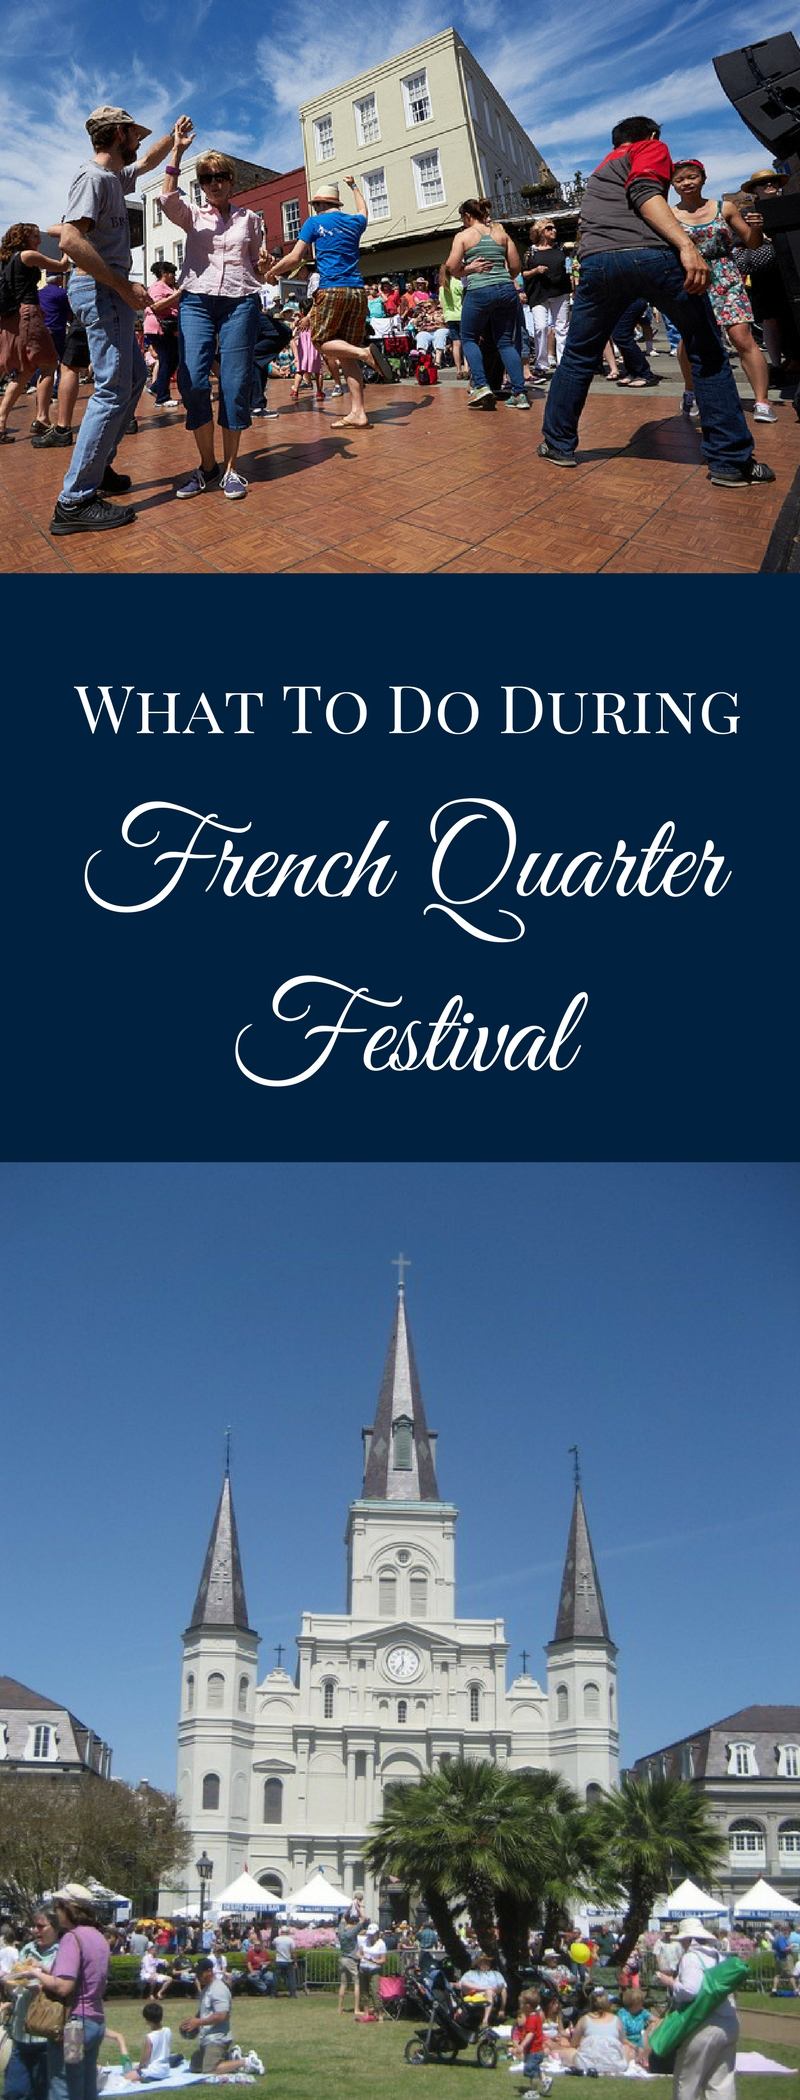 From Thursday, April 6 through Sunday, April 9, 2017 French Quarter Festival will celebrate with a huge free festival in New Orleans' oldest neighborhood.